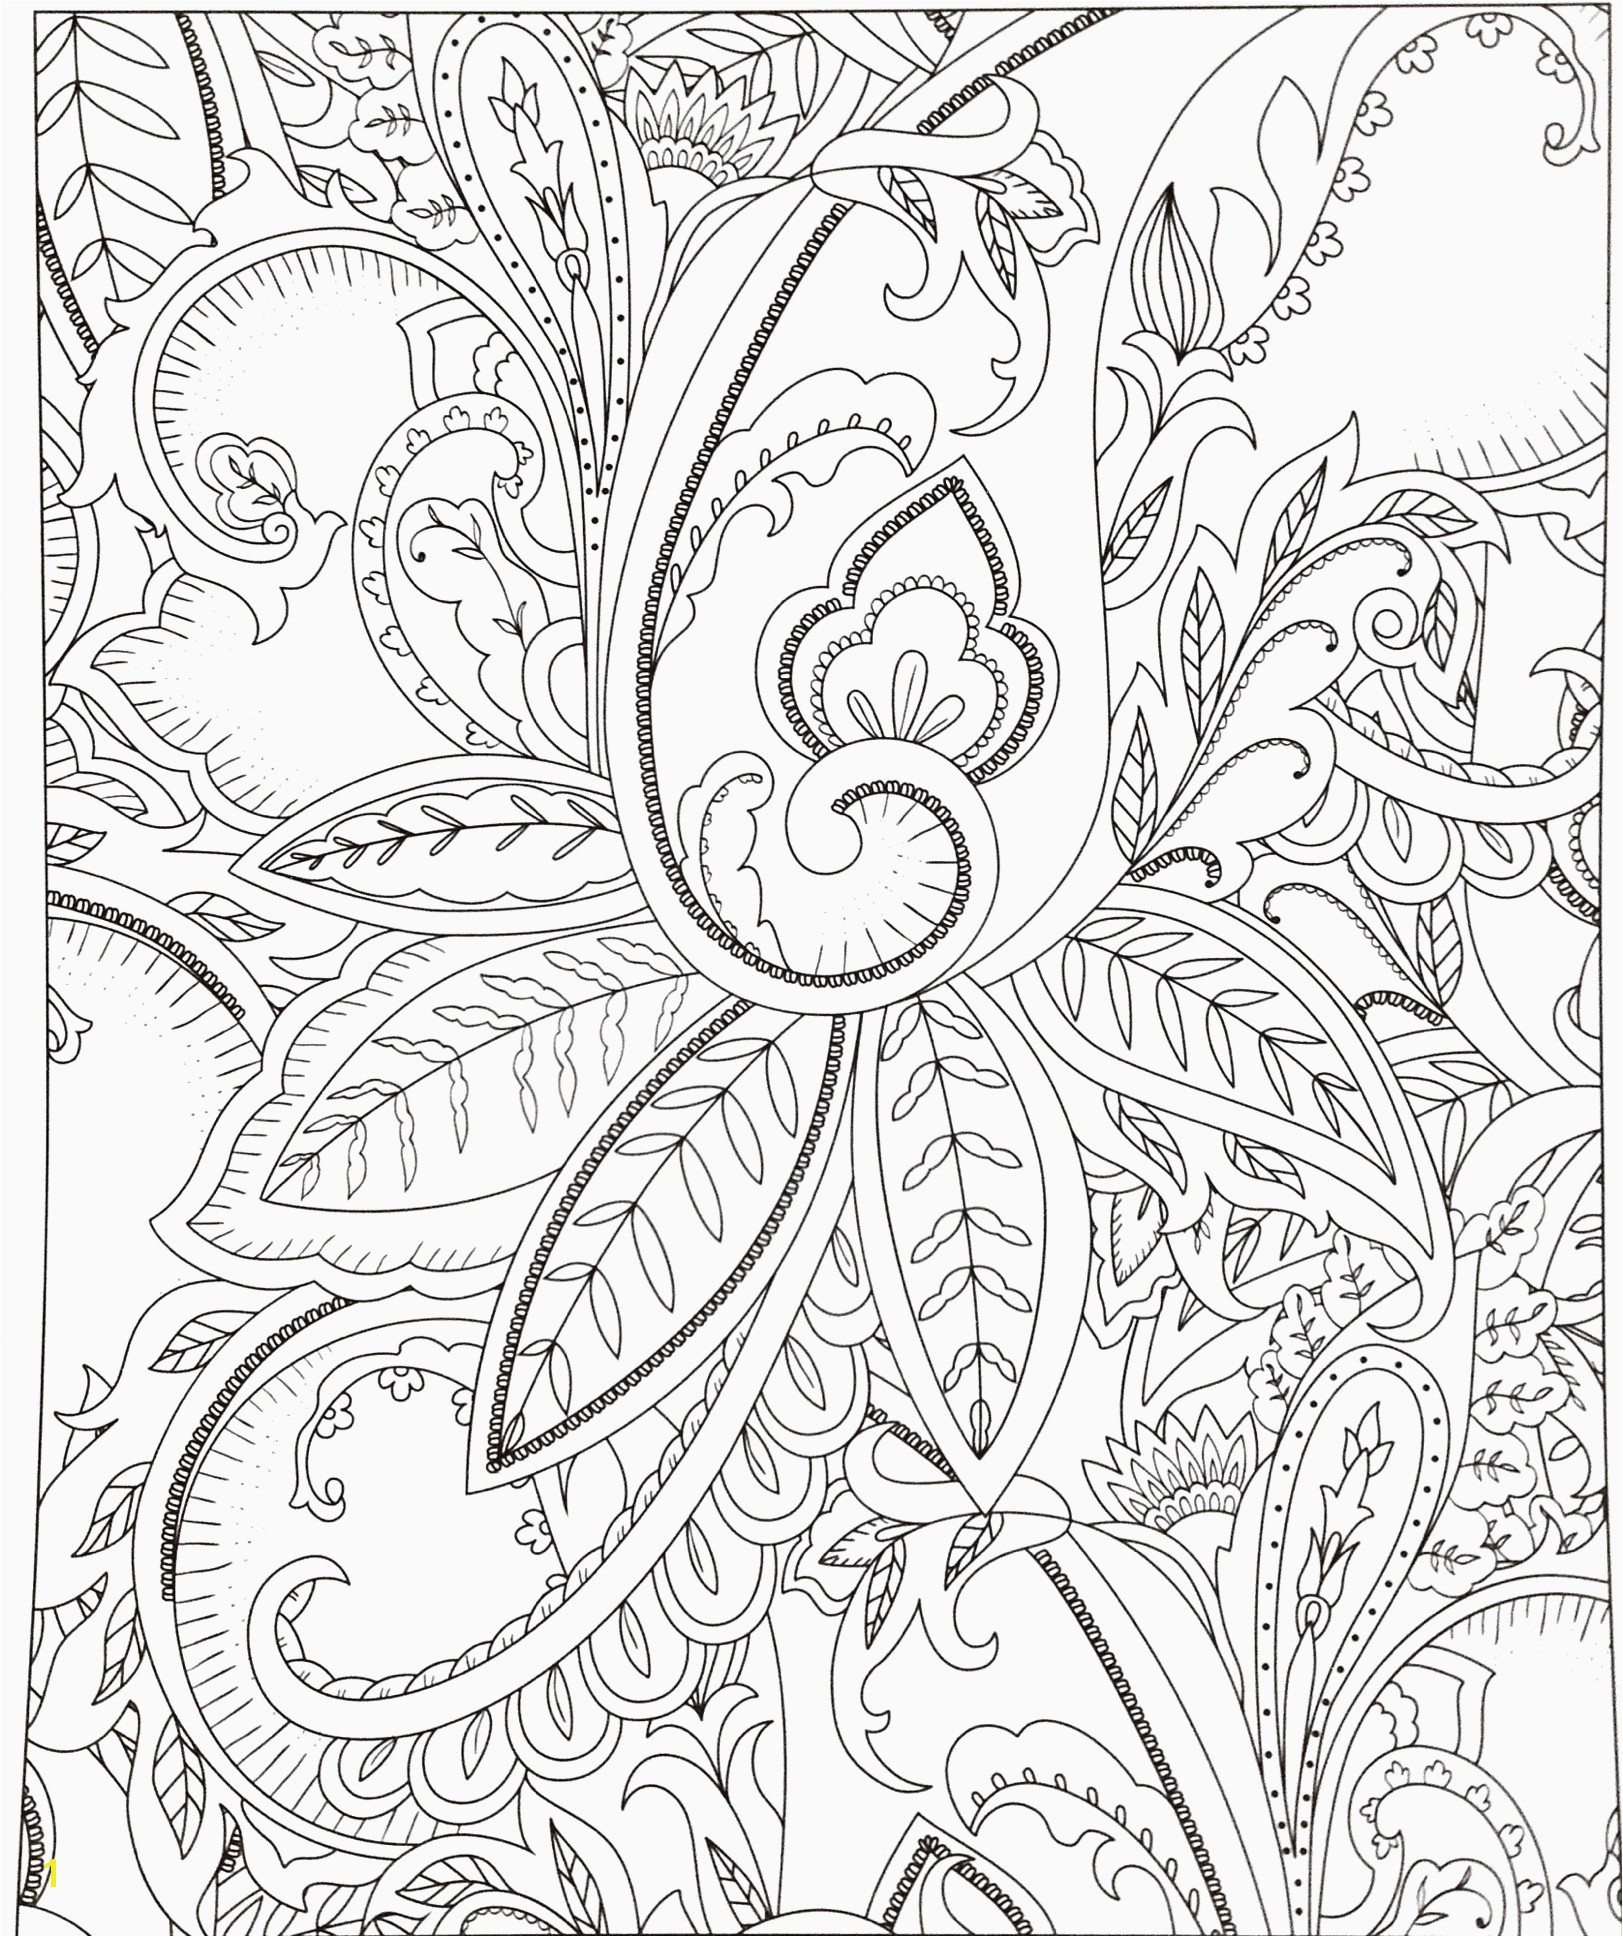 Free Adult Coloring Pages Printable Elegant Printable Awesome Od Dog Coloring Pages Free Colouring Pages – Fun